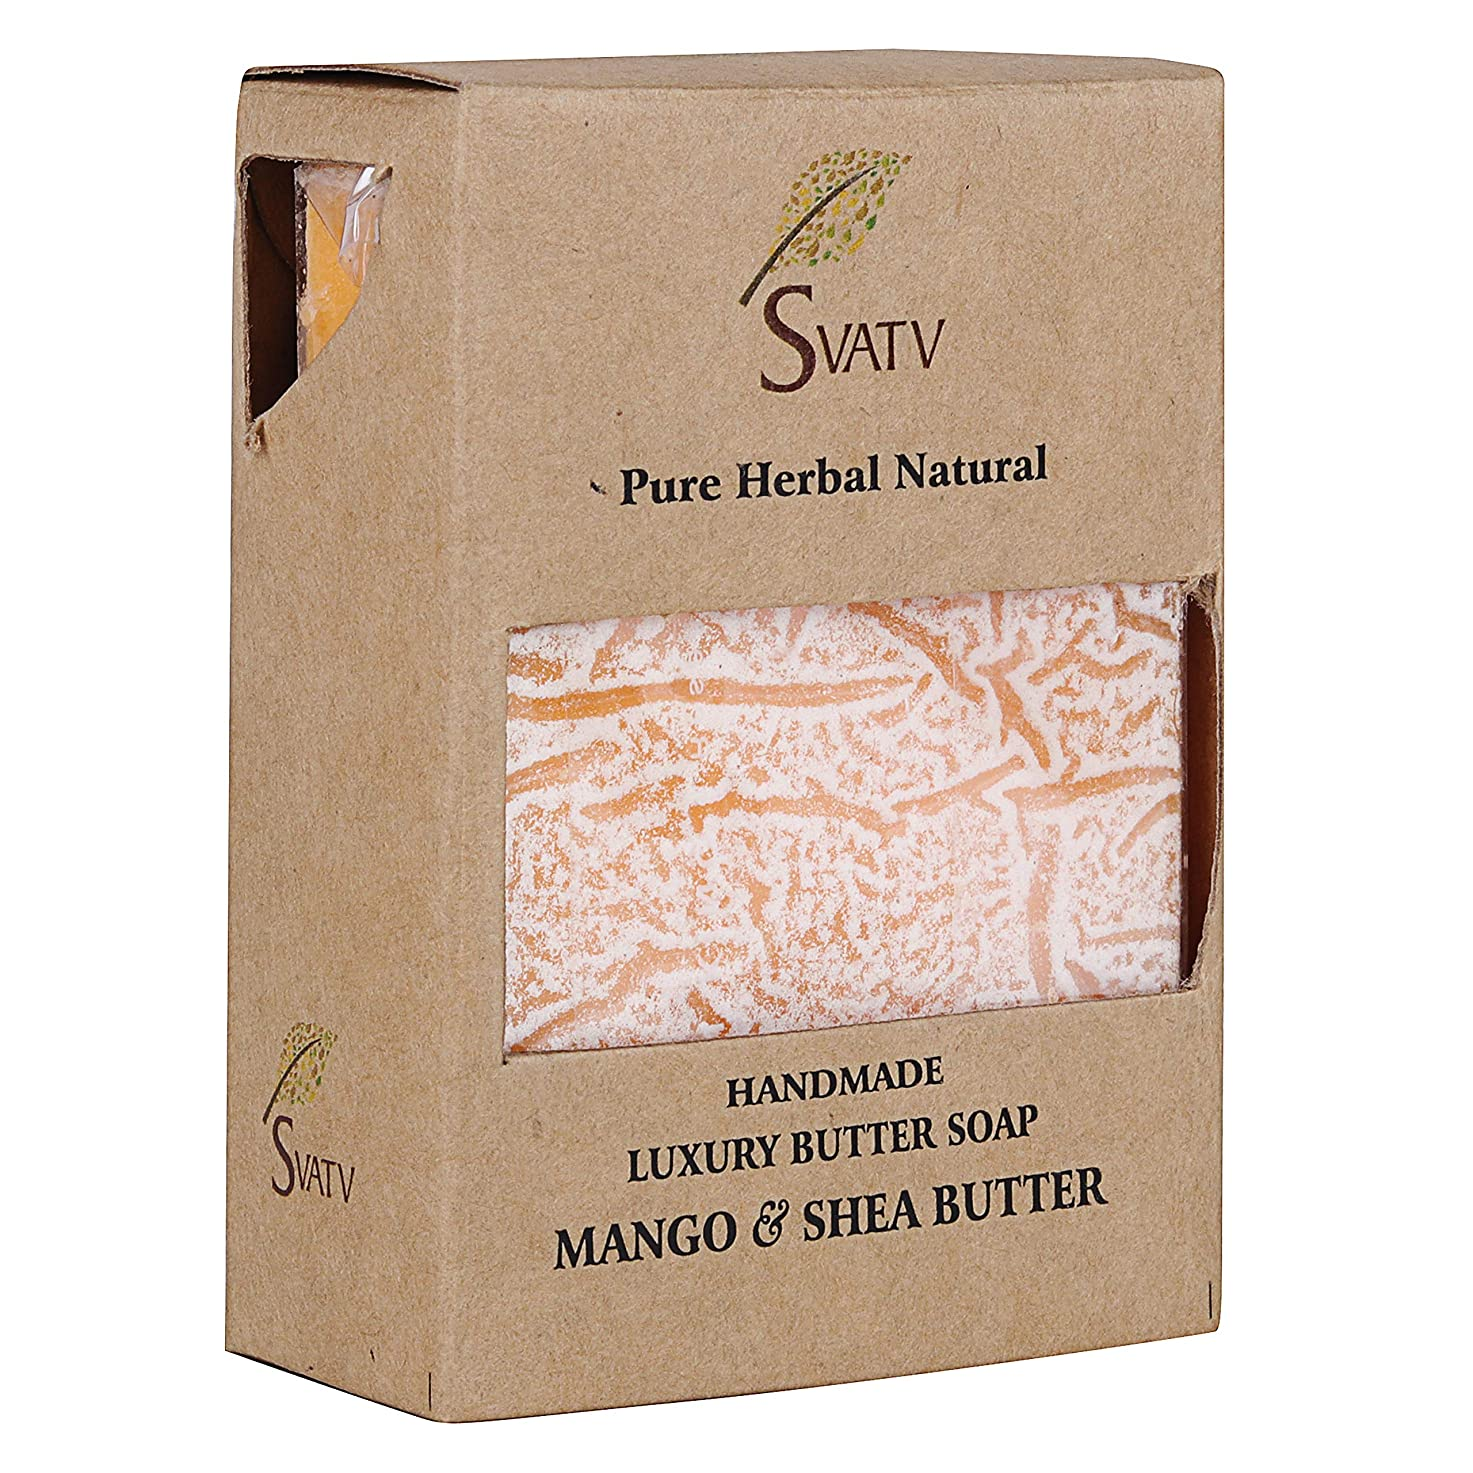 憲法トリッキー放牧するSVATV Handmade Luxury Butter Soap Mango & Shea Butter For All Skin types 100g Bar